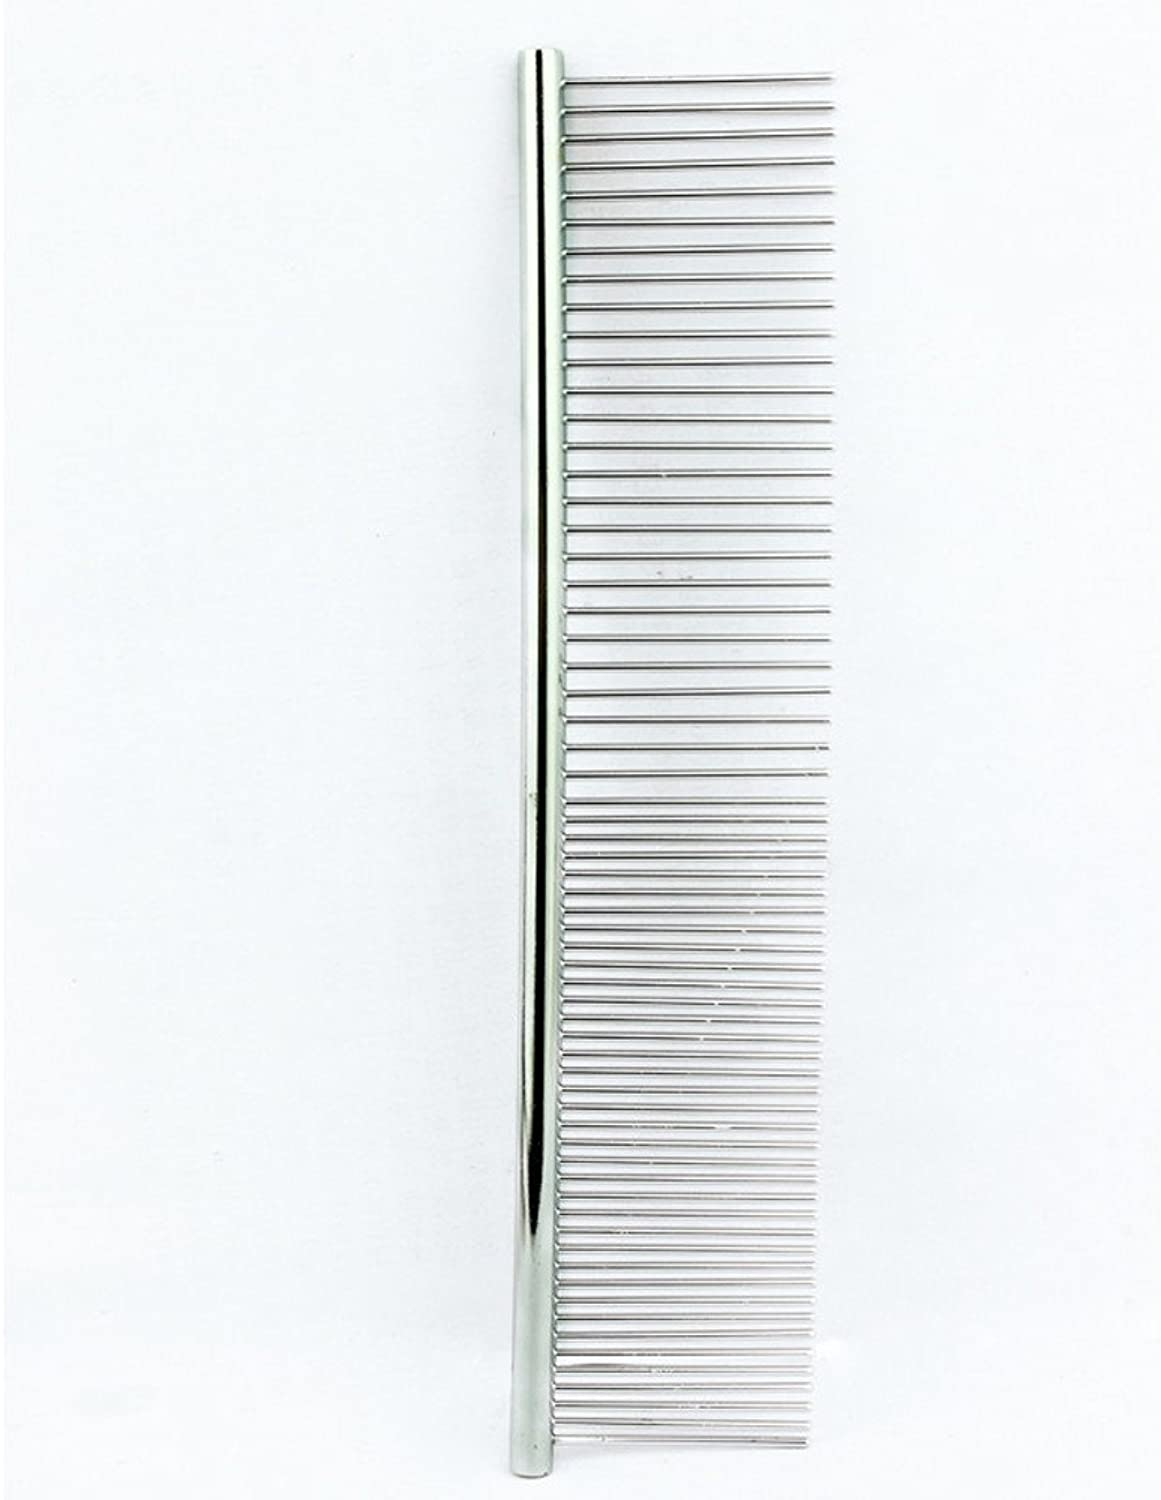 Pet Straight Comb, Cute Stainless Steel Brush Mini Portable Fine Dense Toothed Comb for Removing Matted Fur, Knots & Tangles